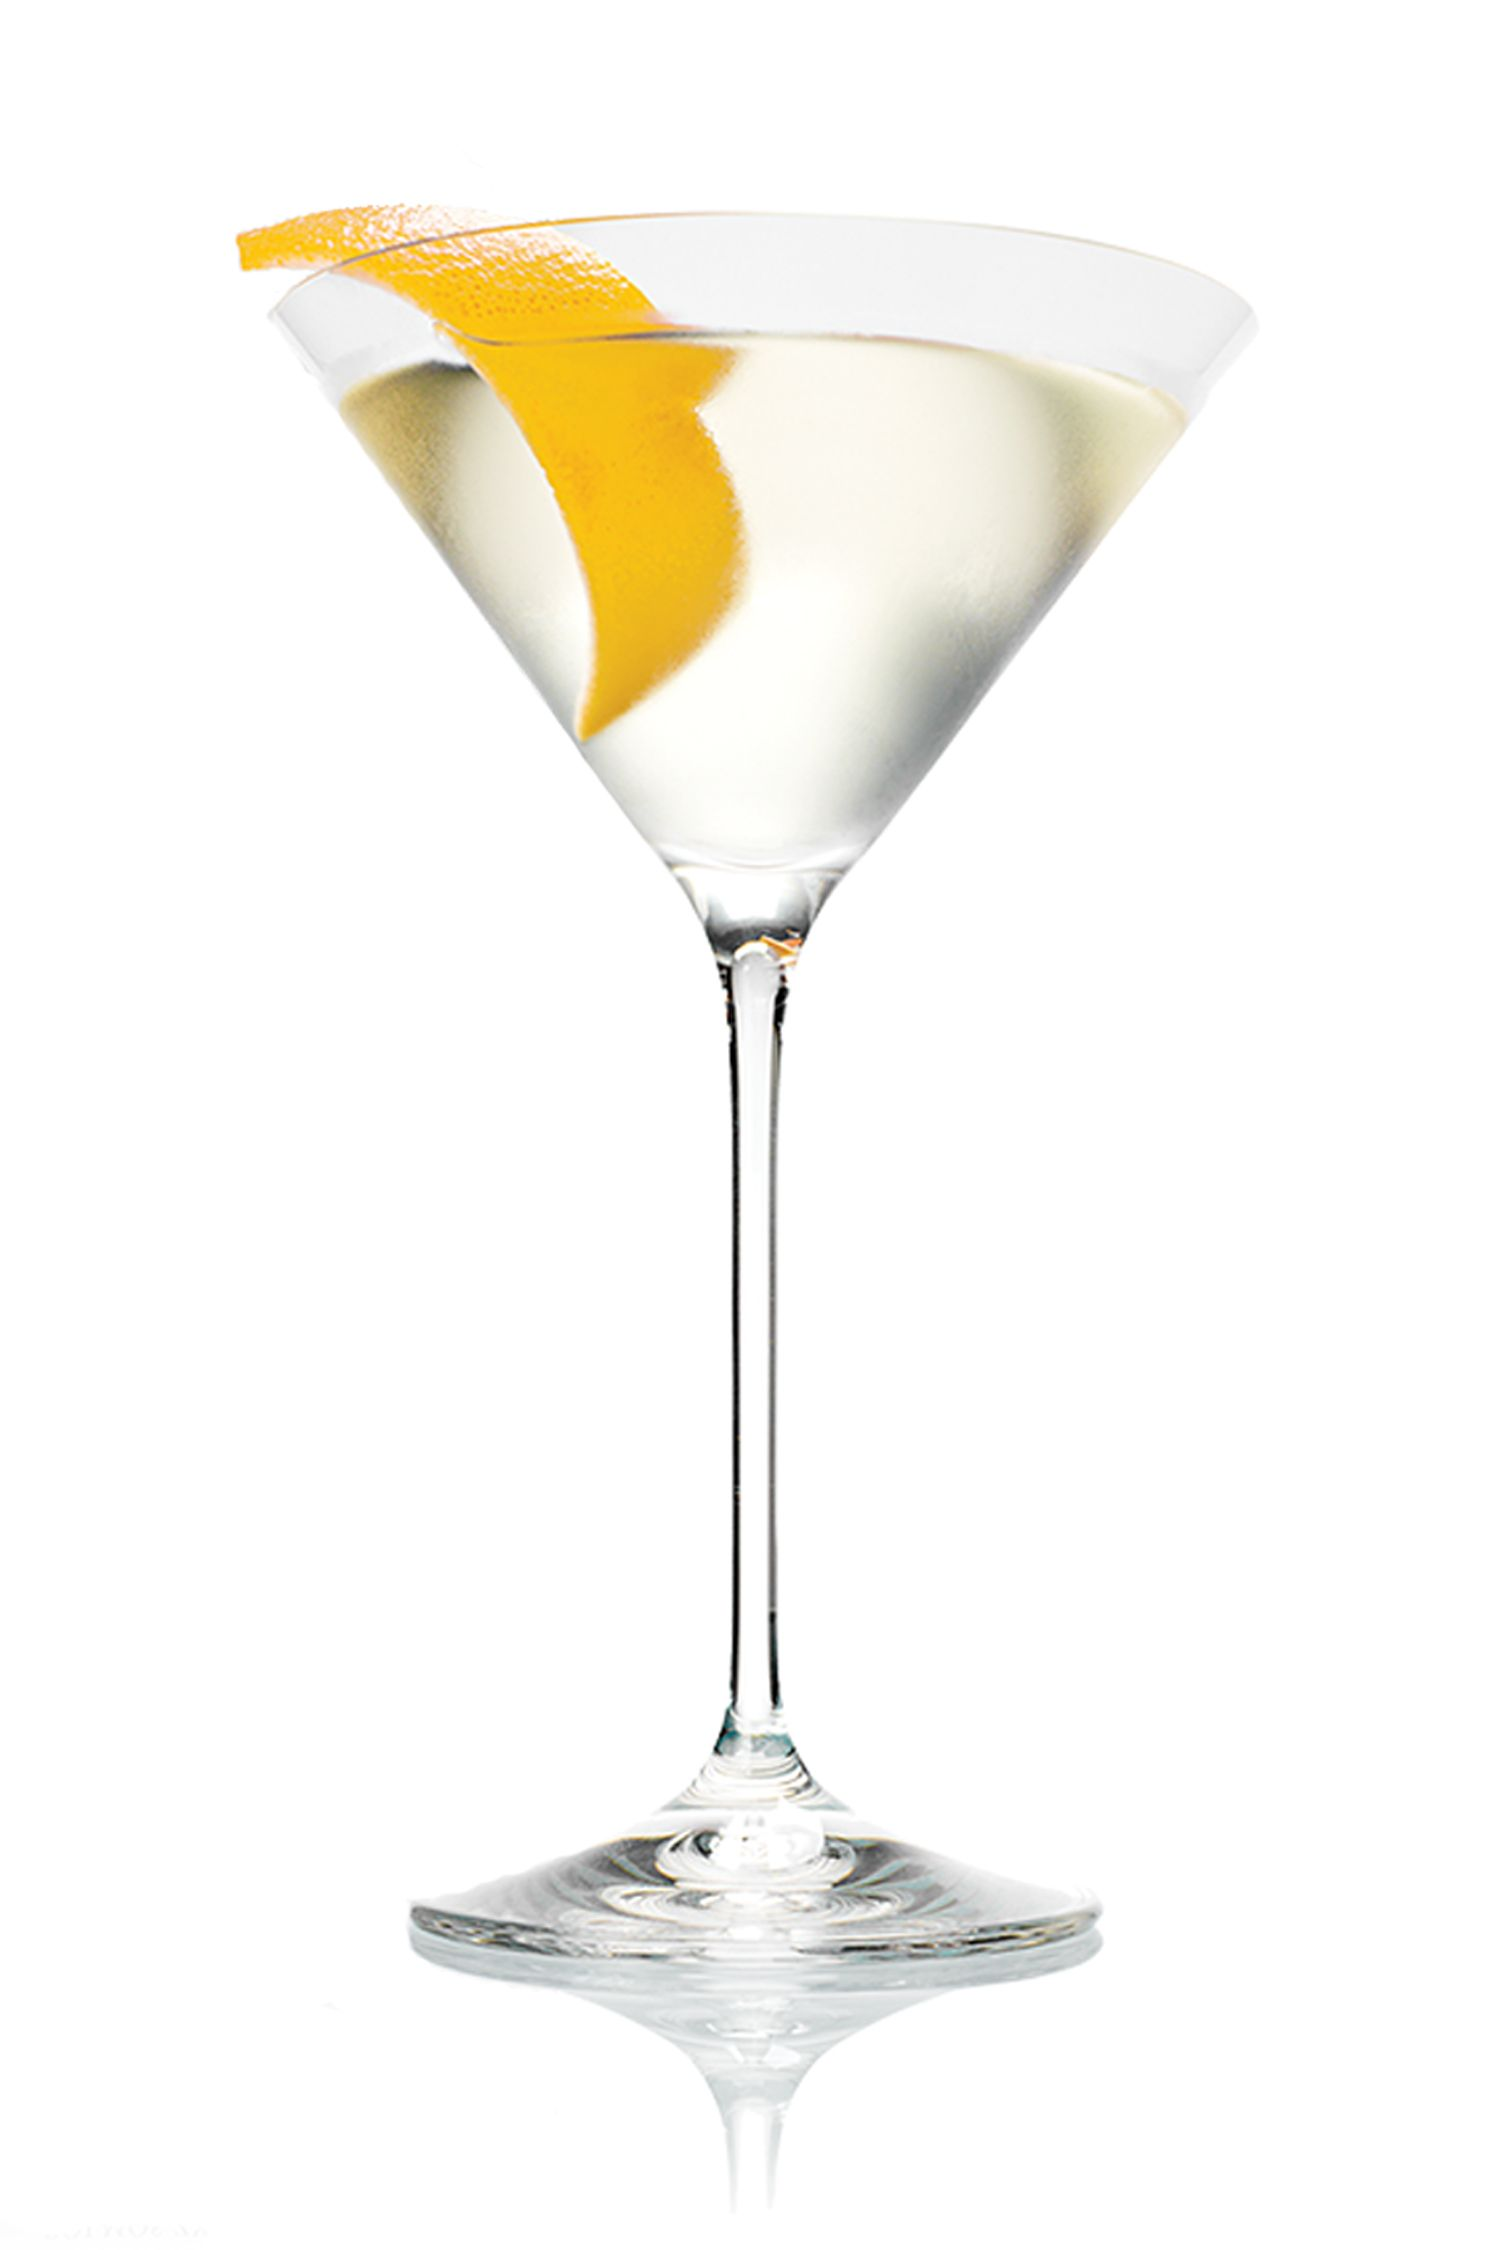 """<p><strong>The Drink</strong><br></p><p><span class=""""redactor-invisible-space"""">Martinis are eternally chic. (Have you ever known anyone who looks anything but cool while drinking James Bond's iconic cocktail?) No need to sully their purity with olive juice–simple is delicious!</span></p><p><em></em><strong>The Recipe</strong></p><p><em></em> 2 oz Belvedere Vodka </p><p>1/3 oz Dry Vermouth</p><p>Serve this classic 'tini shaken, not stirred; garnish with a lemon twist. </p>"""